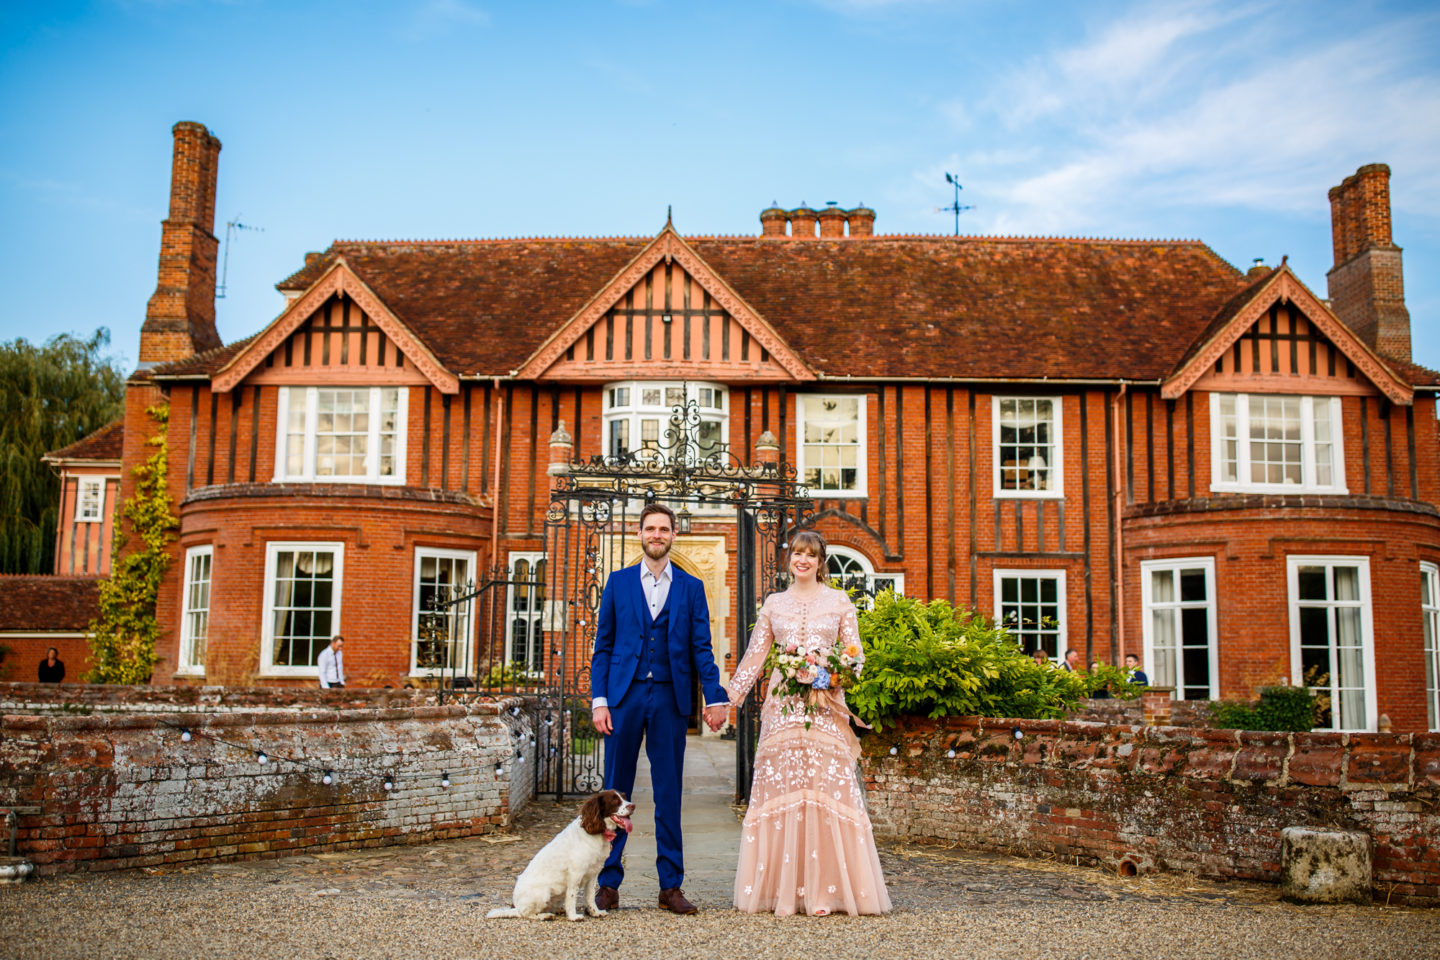 An Intimate and Ethical Civil Partnership At Boxted Hall, Suffolk